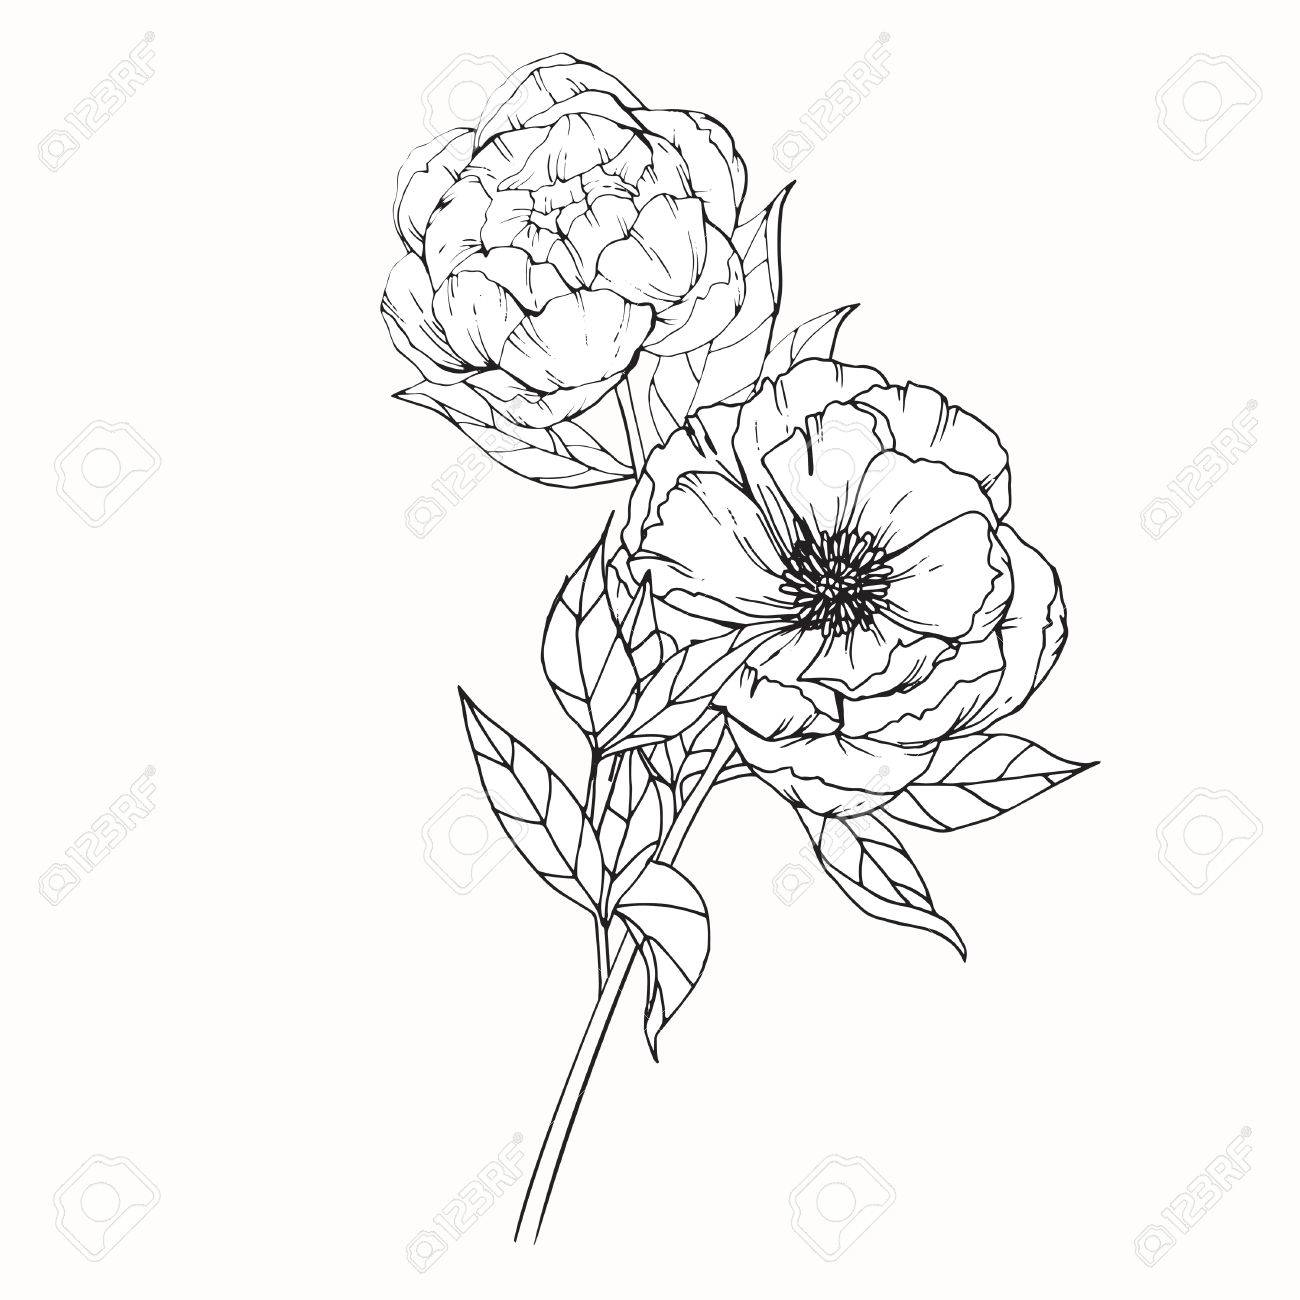 Peony flowers drawing and sketch with line,art on white backgrounds.